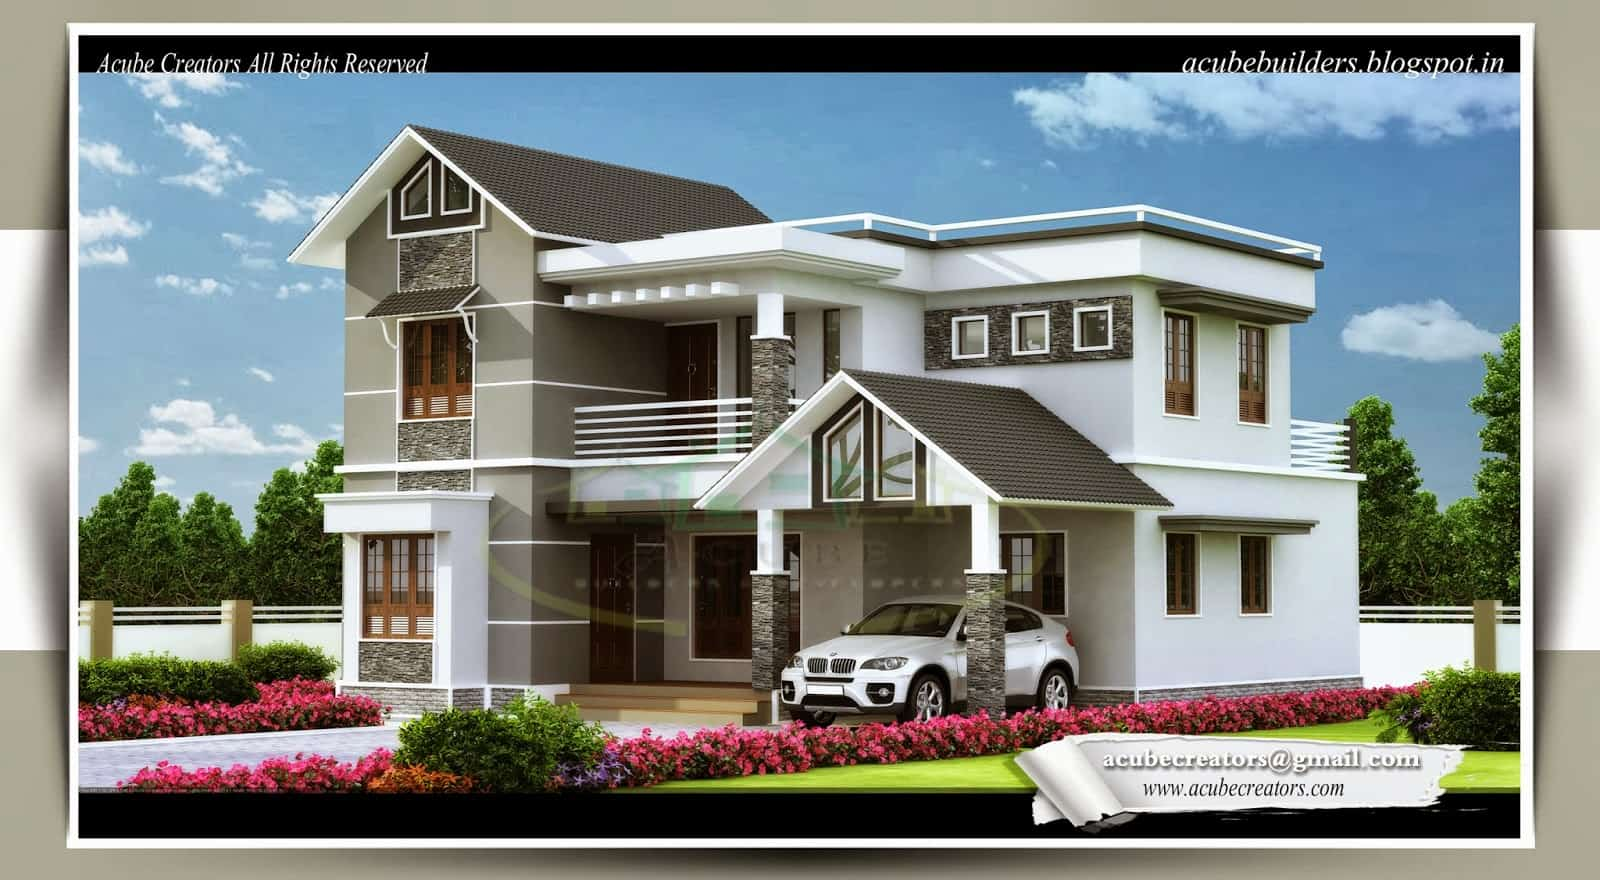 kerala home design for 4 bedroom villa at 1983 sqft - Home Design Images